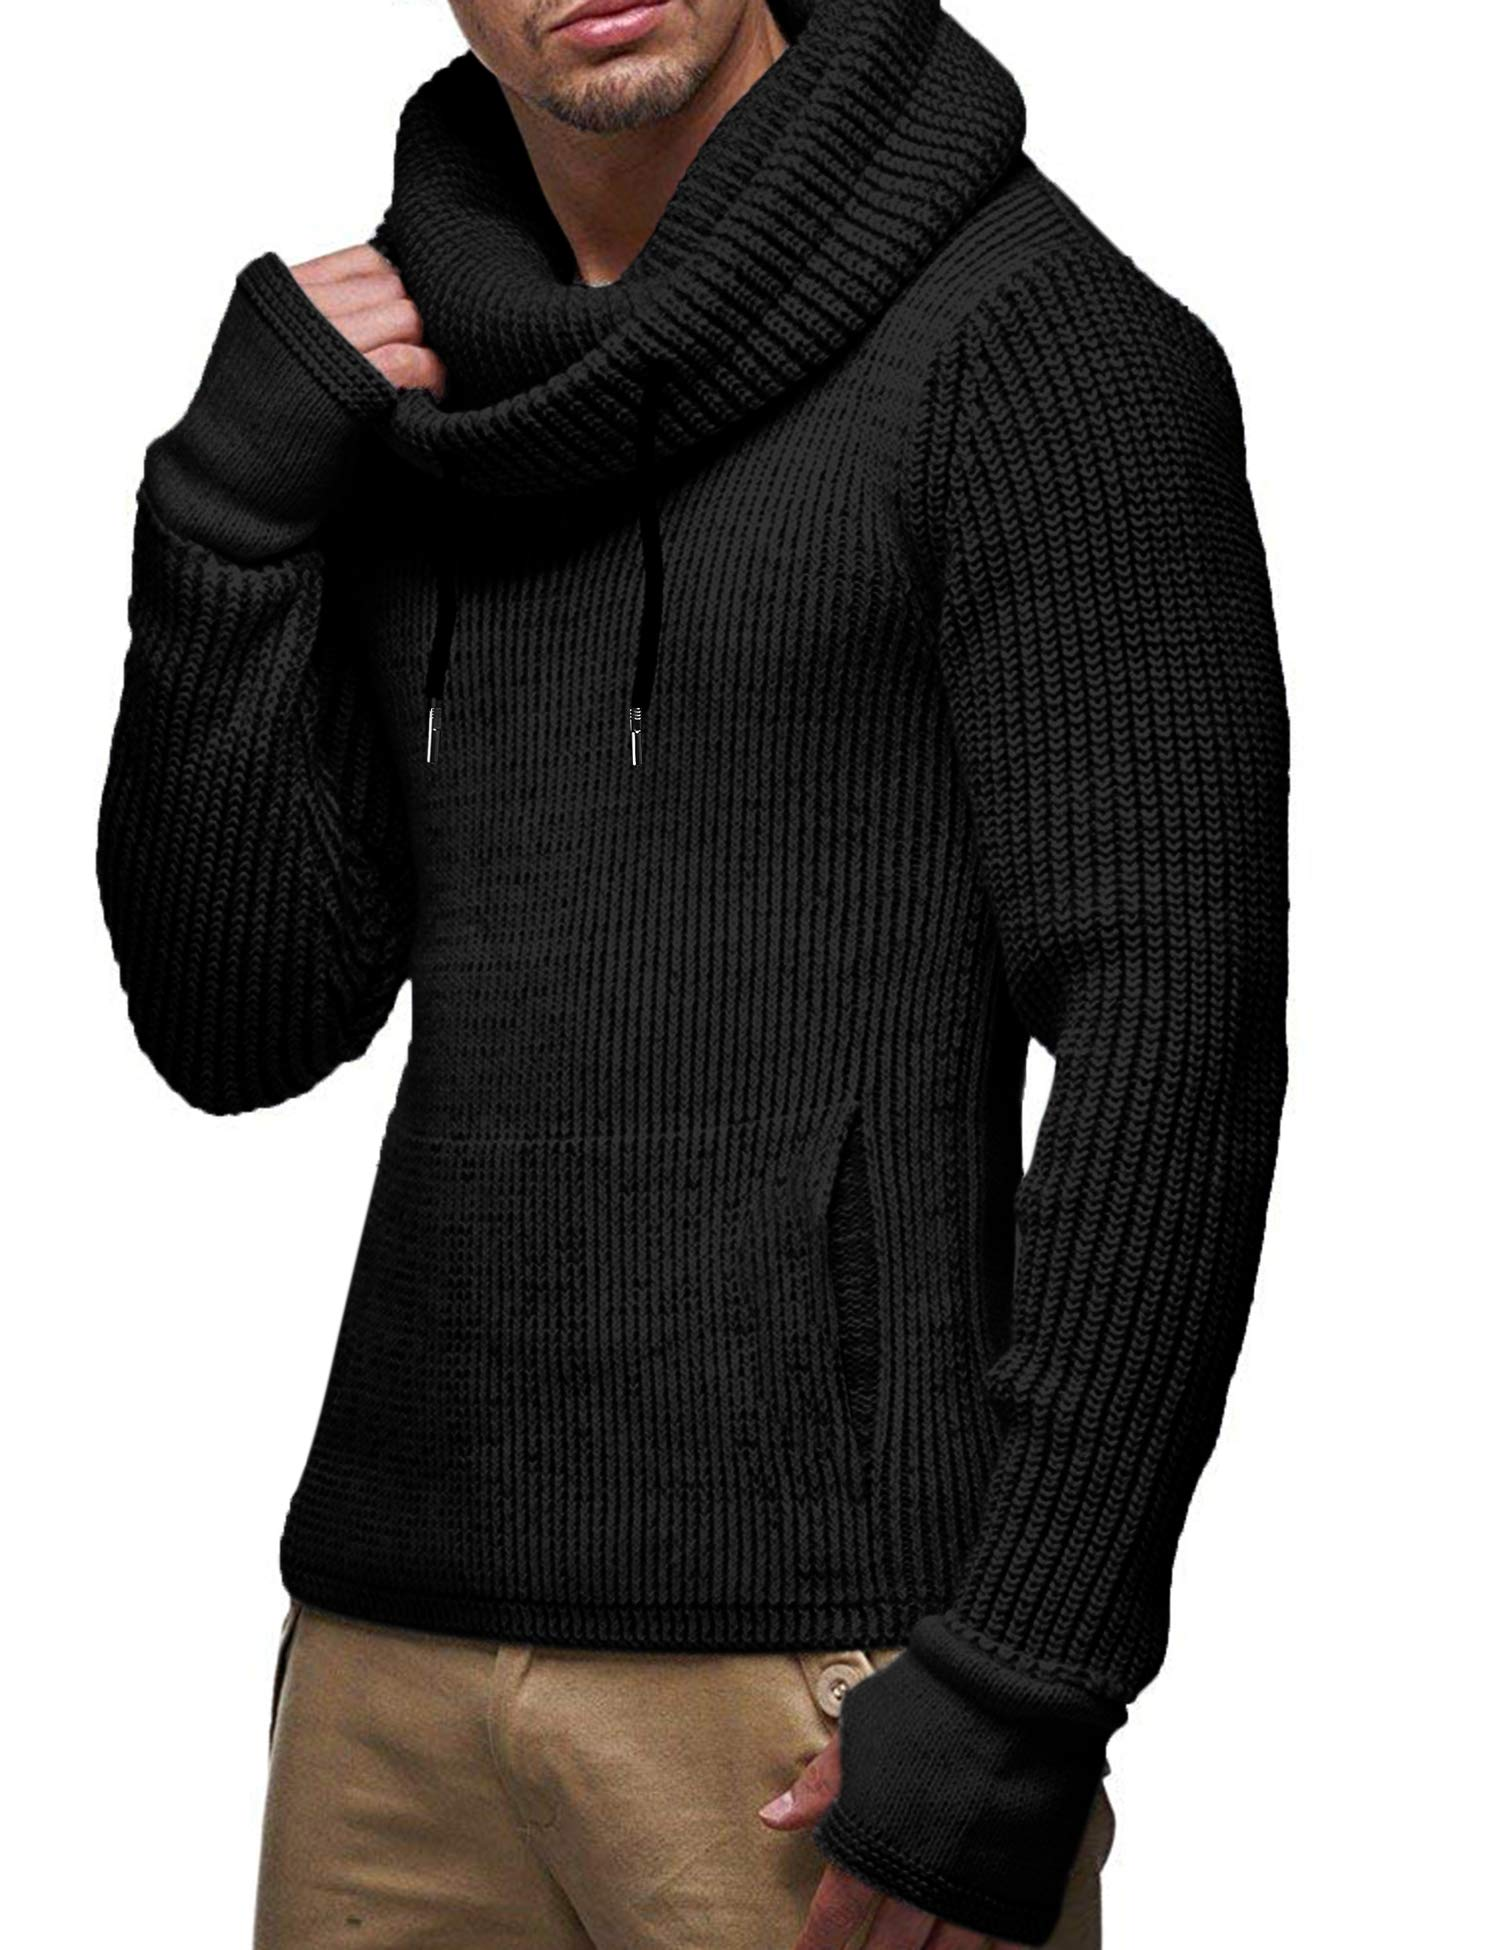 COOFANDY Mens Knitted Pullover Jumper Turtleneck Long Sleeve Slim Fit Sweater by COOFANDY